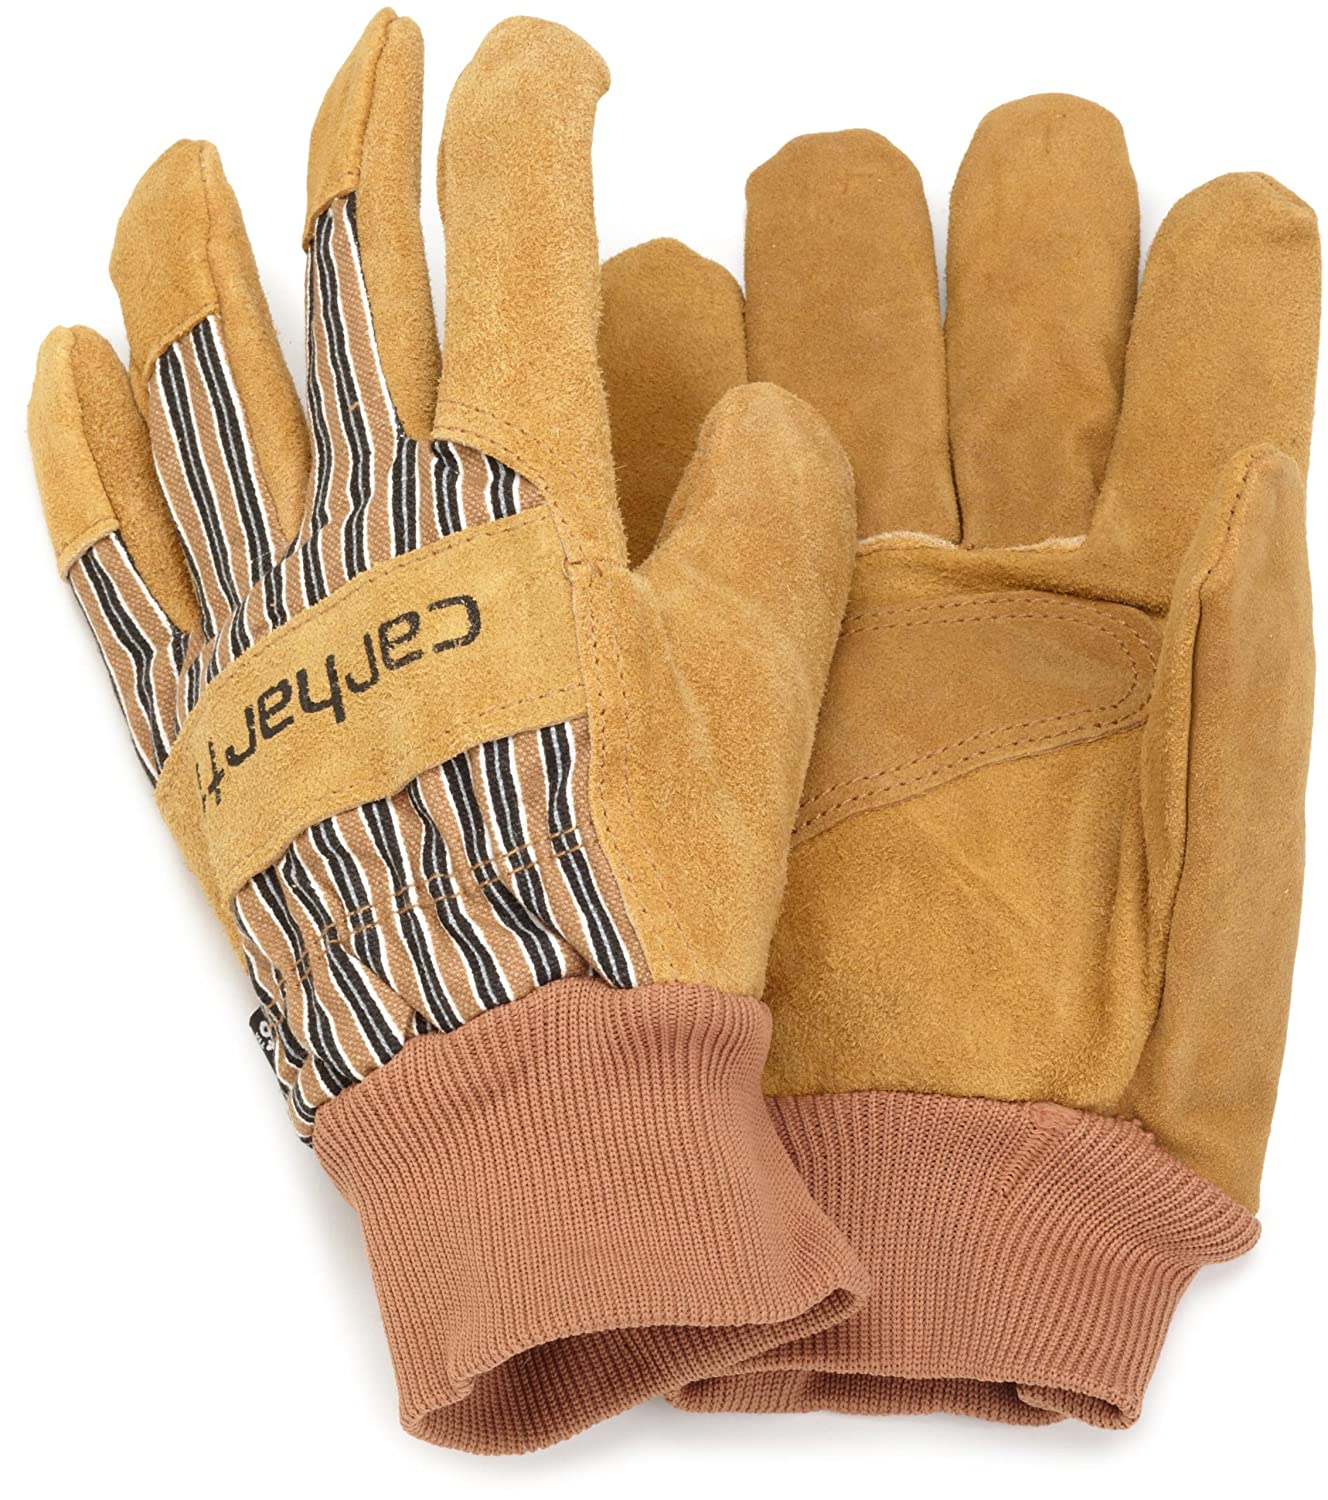 Carhartt Men's Insulated Suede Work Glove with Knit Cuff Carhartt Men' s Gloves A512